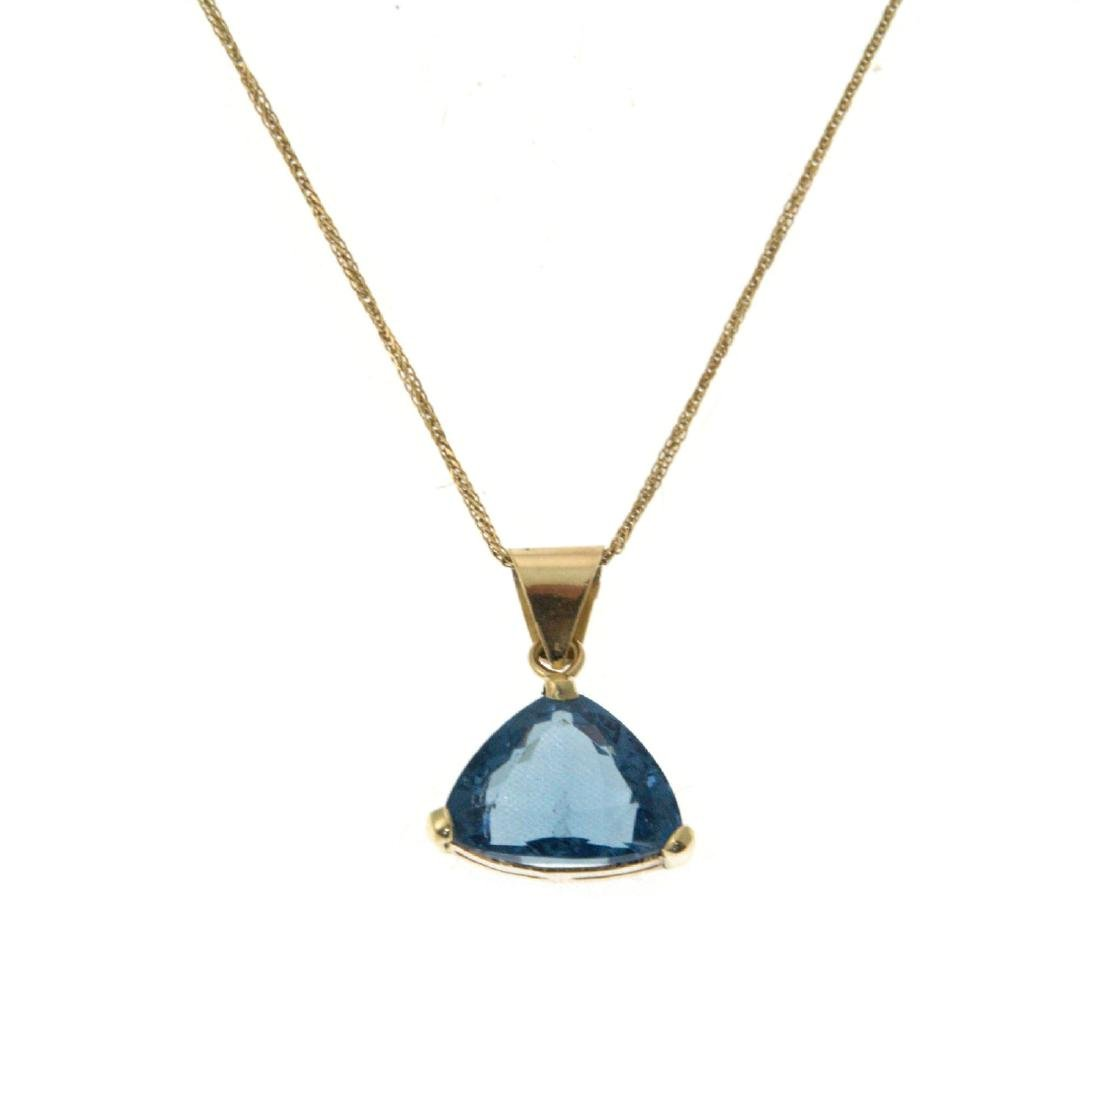 14k Yellow Gold and Blue Topaz Necklace.